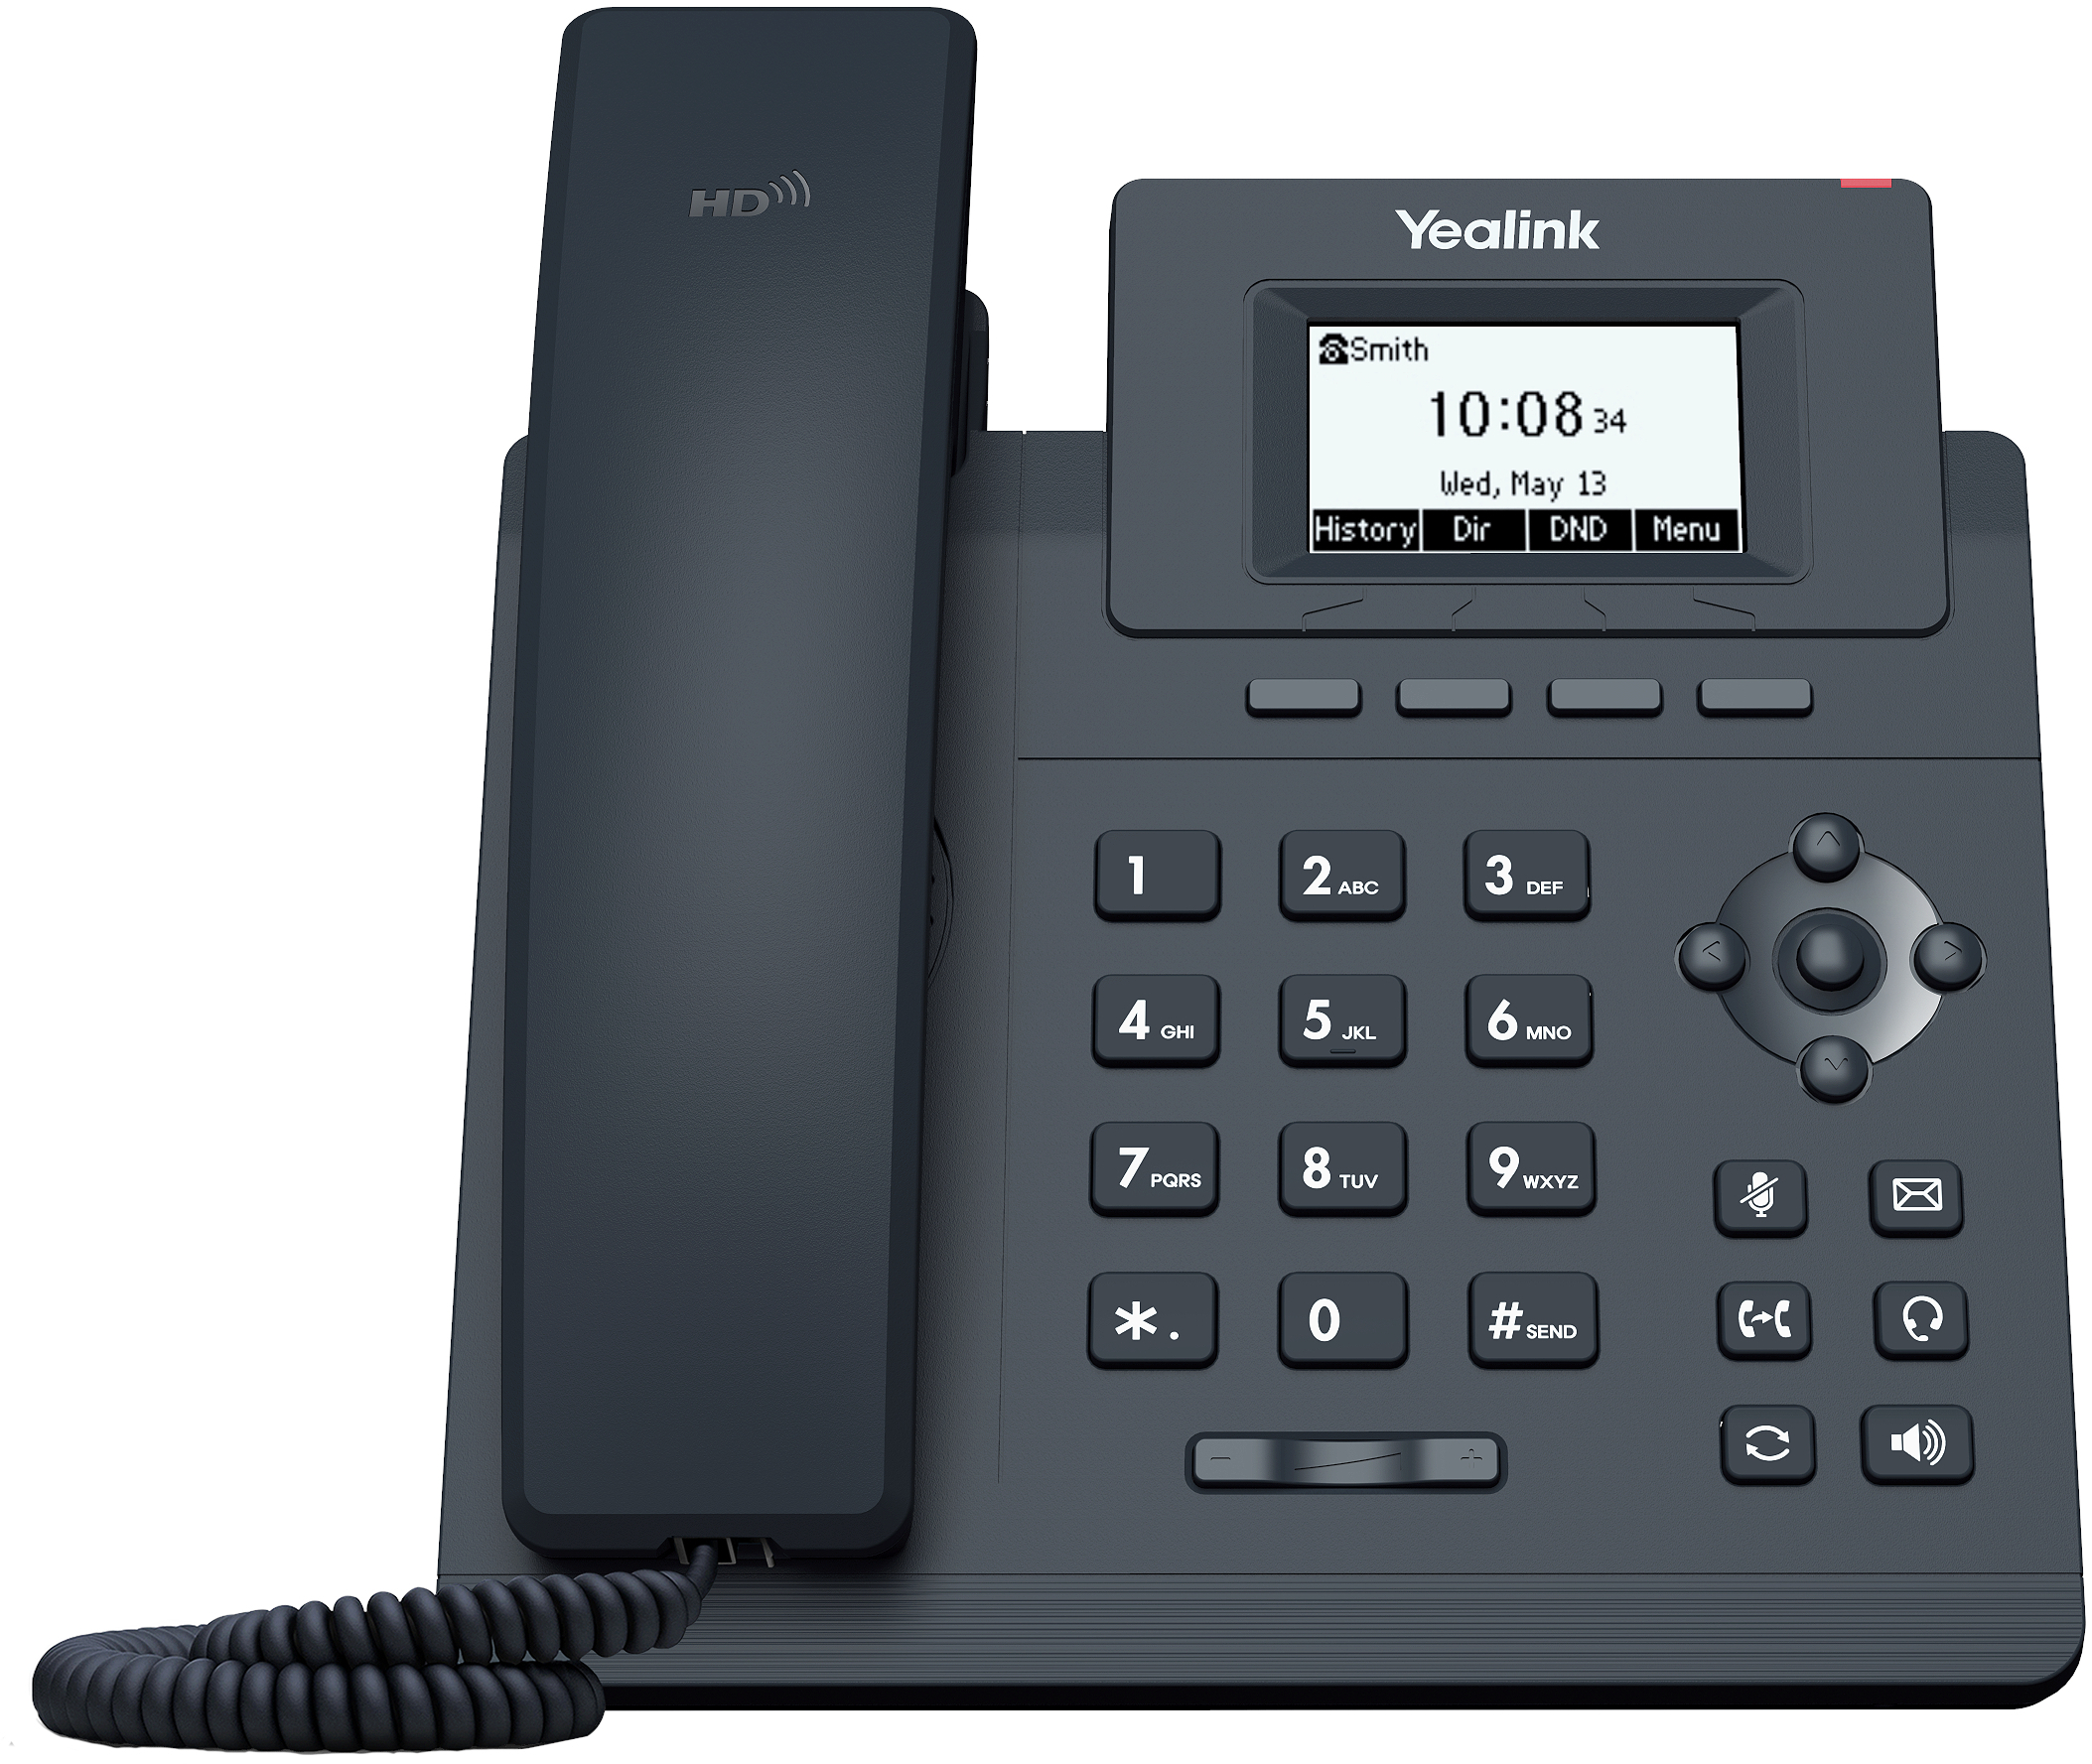 Yealink T30 - Entry-Level